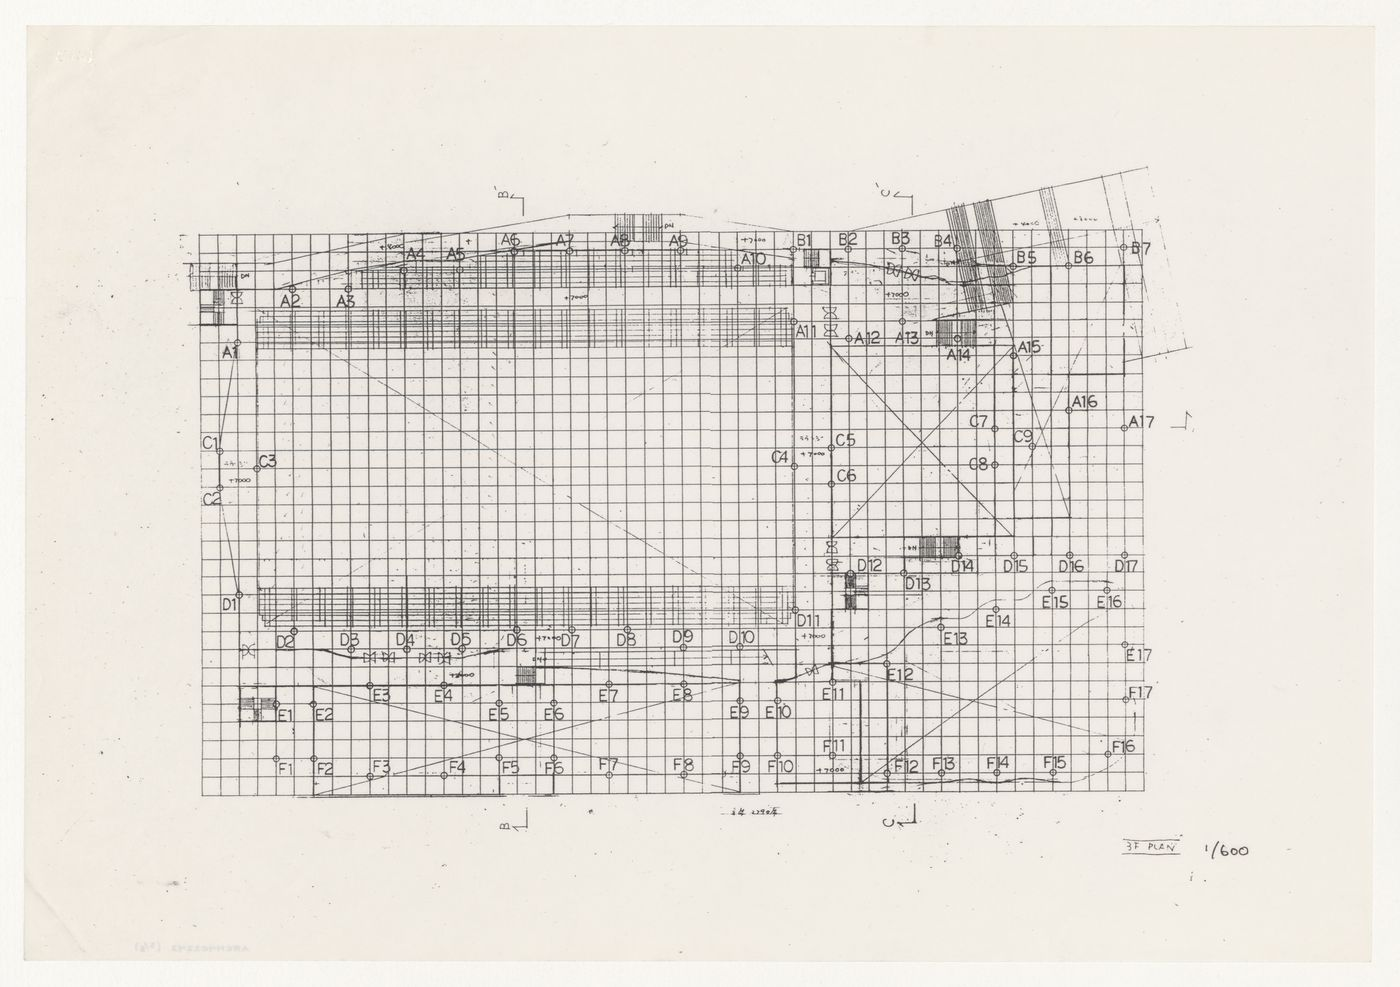 Plan and diagrammatic roof sections for Odawara Municipal Sports Complex, Odawara, Japan